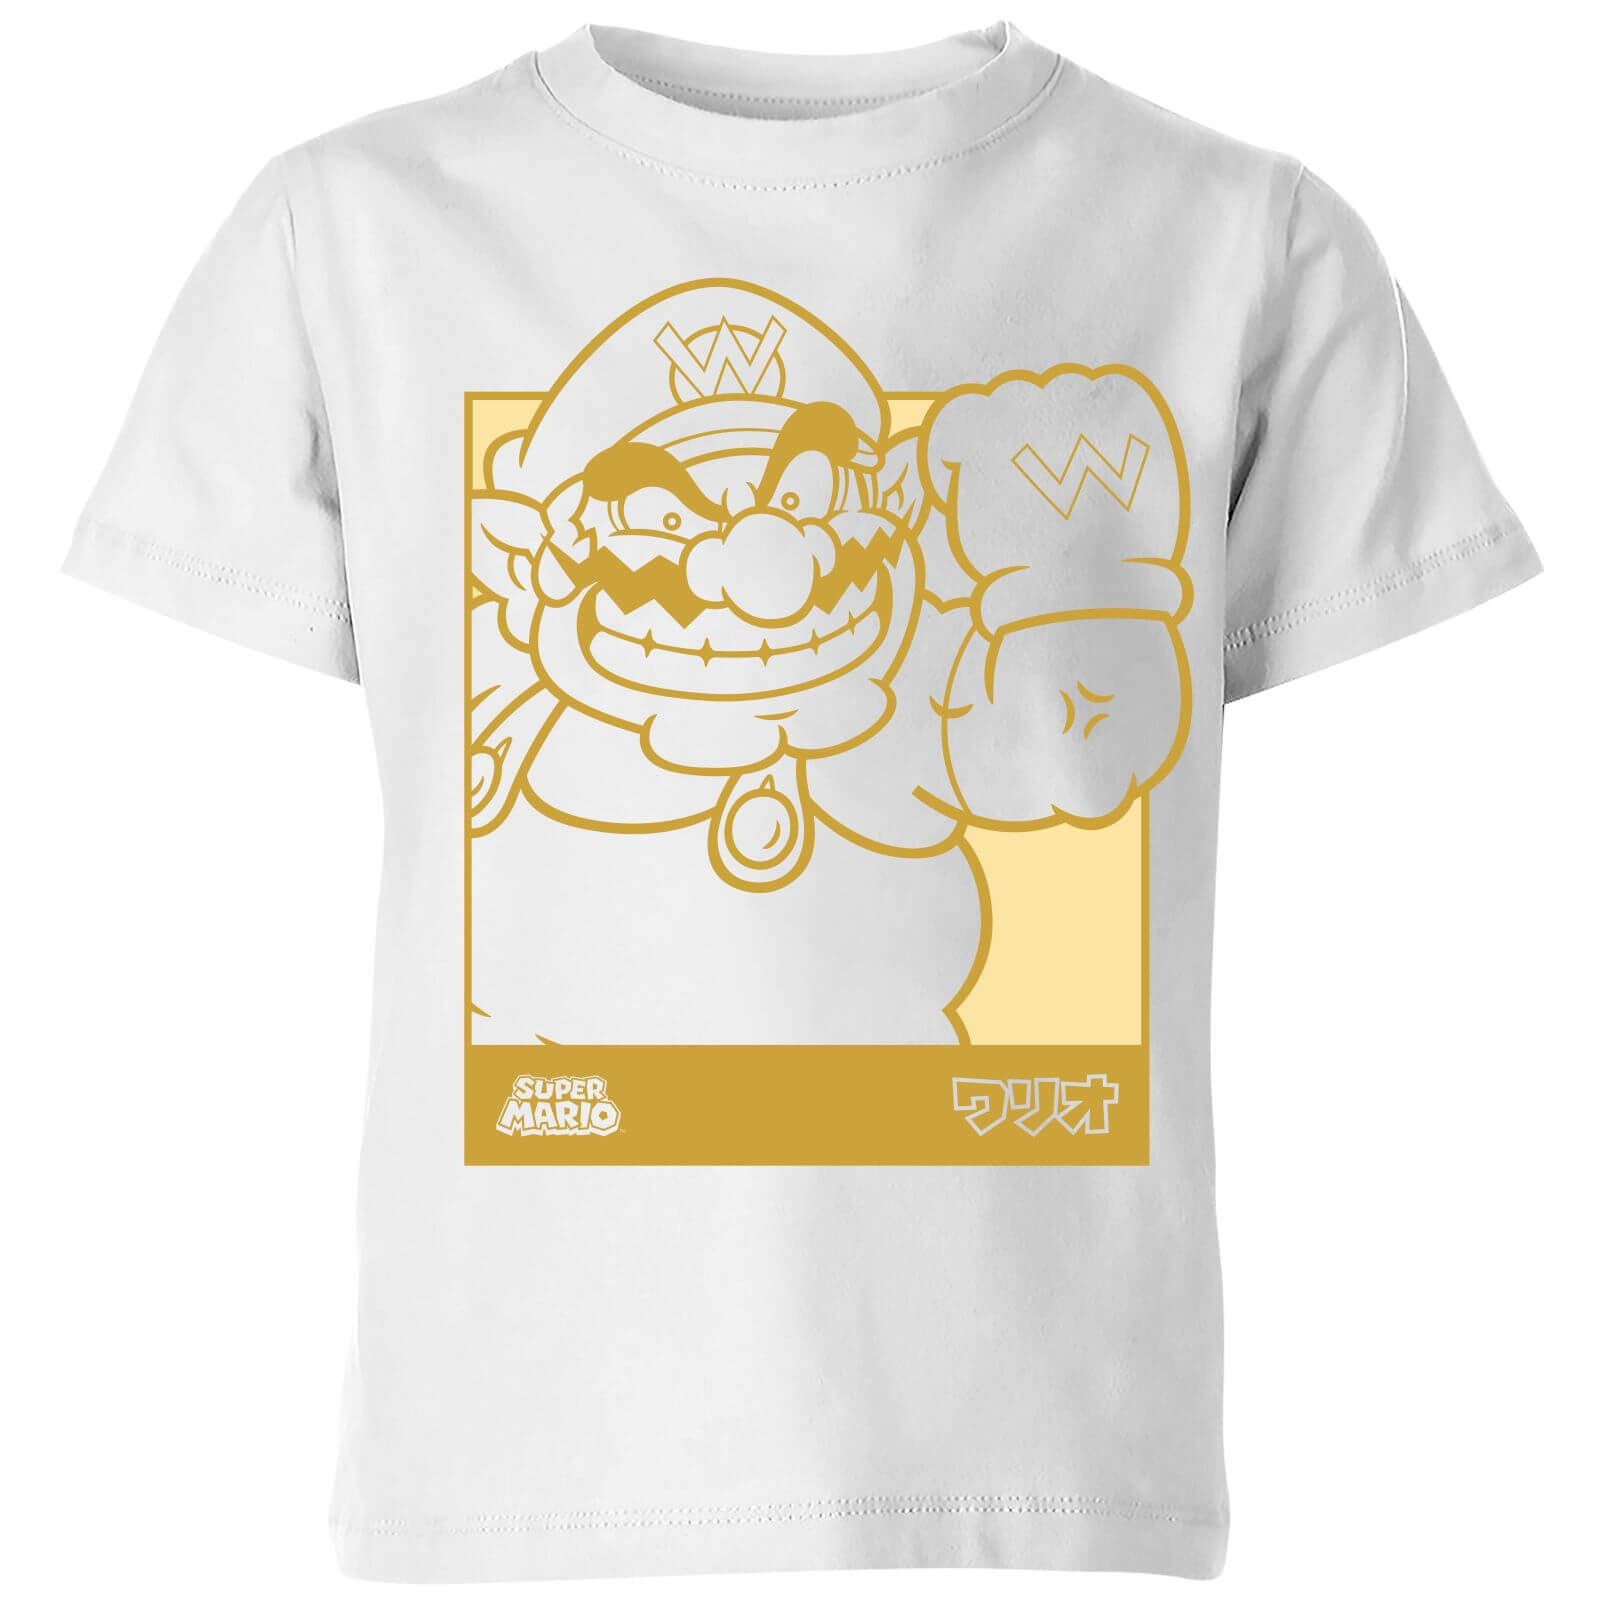 Nintendo Super Mario Wario Kanji Line Art Kids' T-Shirt - White - 5-6 Years image